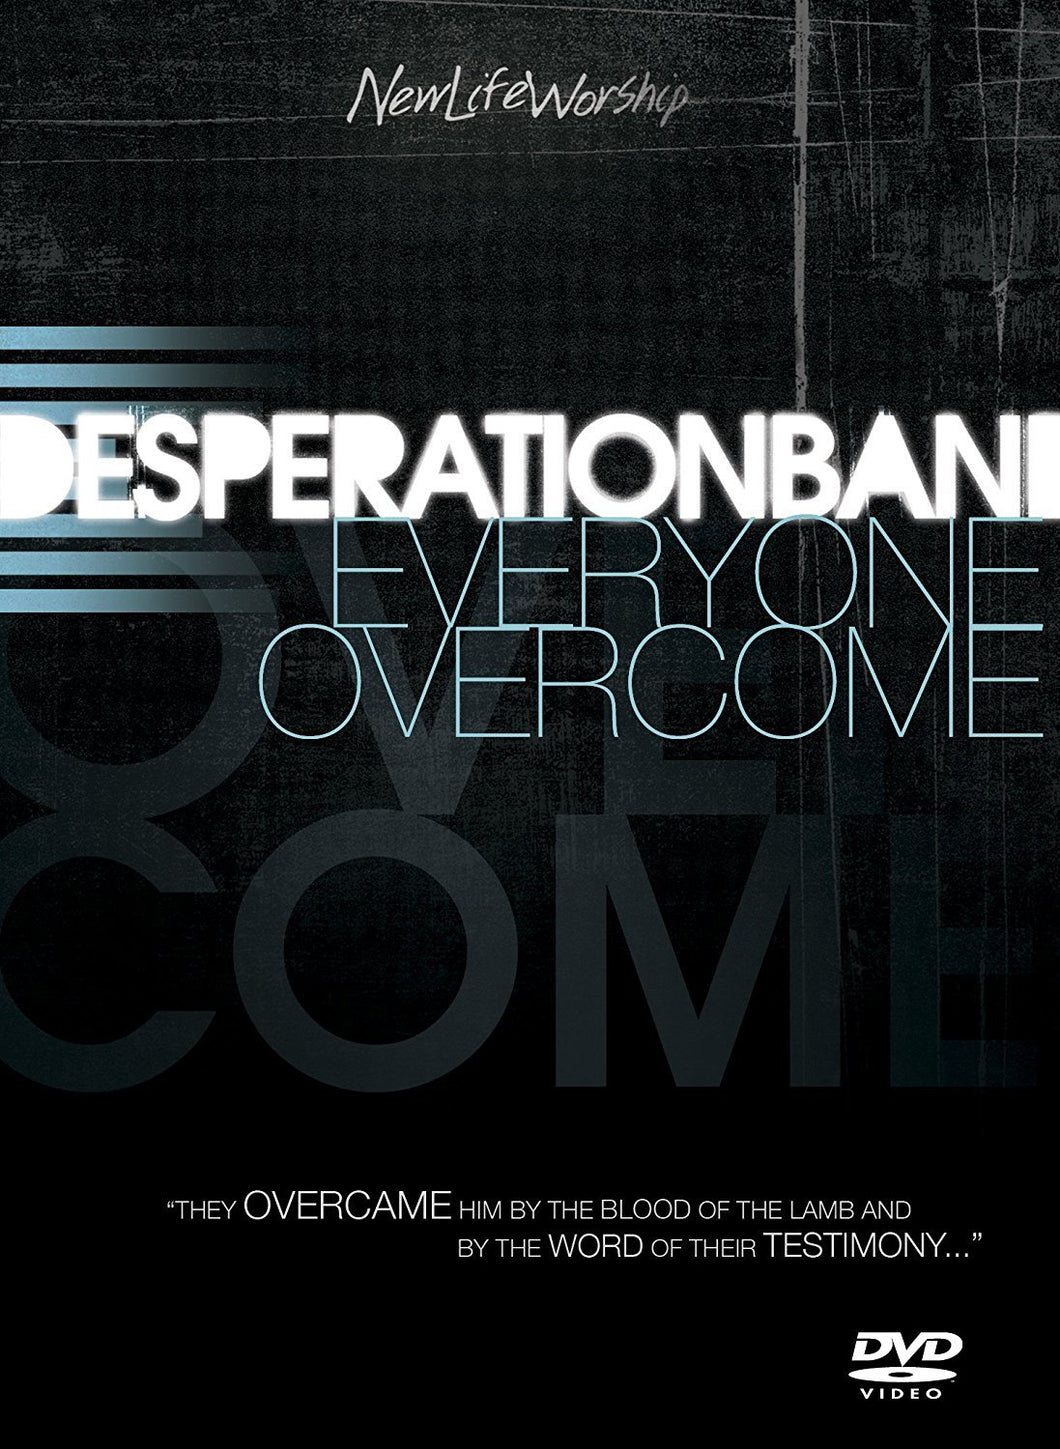 Desperation Band Everyone Overcome DVD